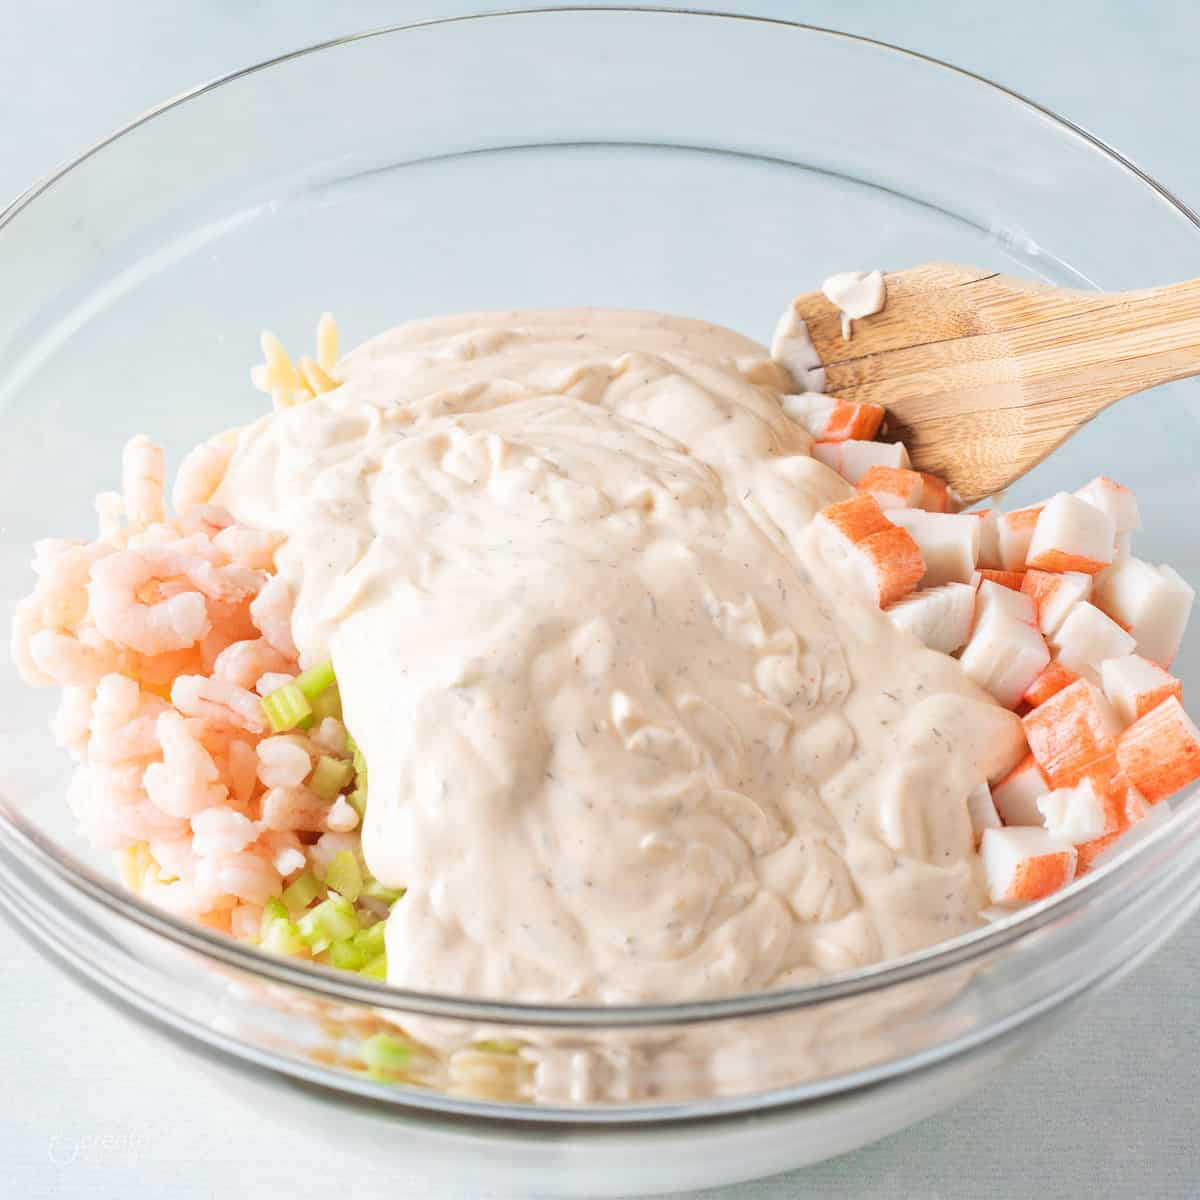 seafood ad creamy style dressing in bowl with wooden spoon